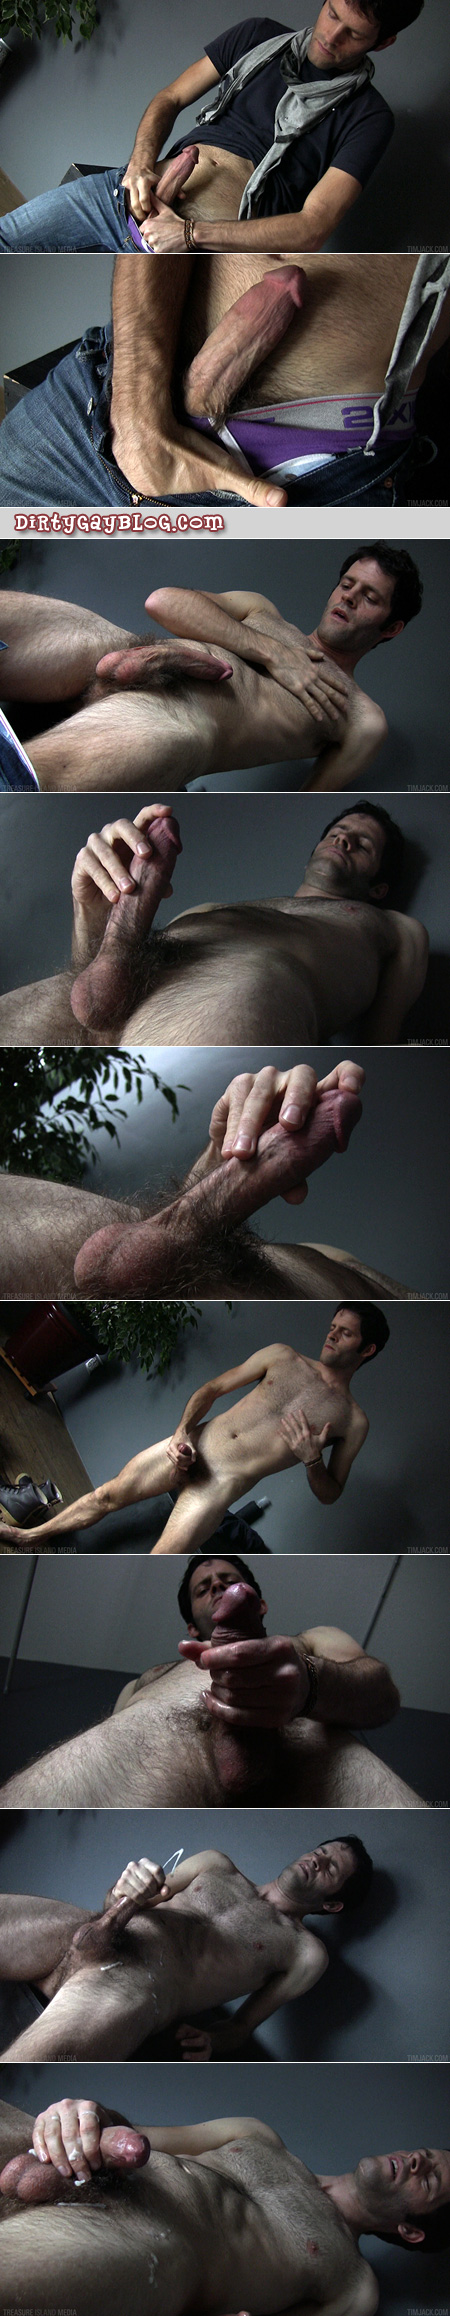 Muscular otter jacking off shoots a huge load.